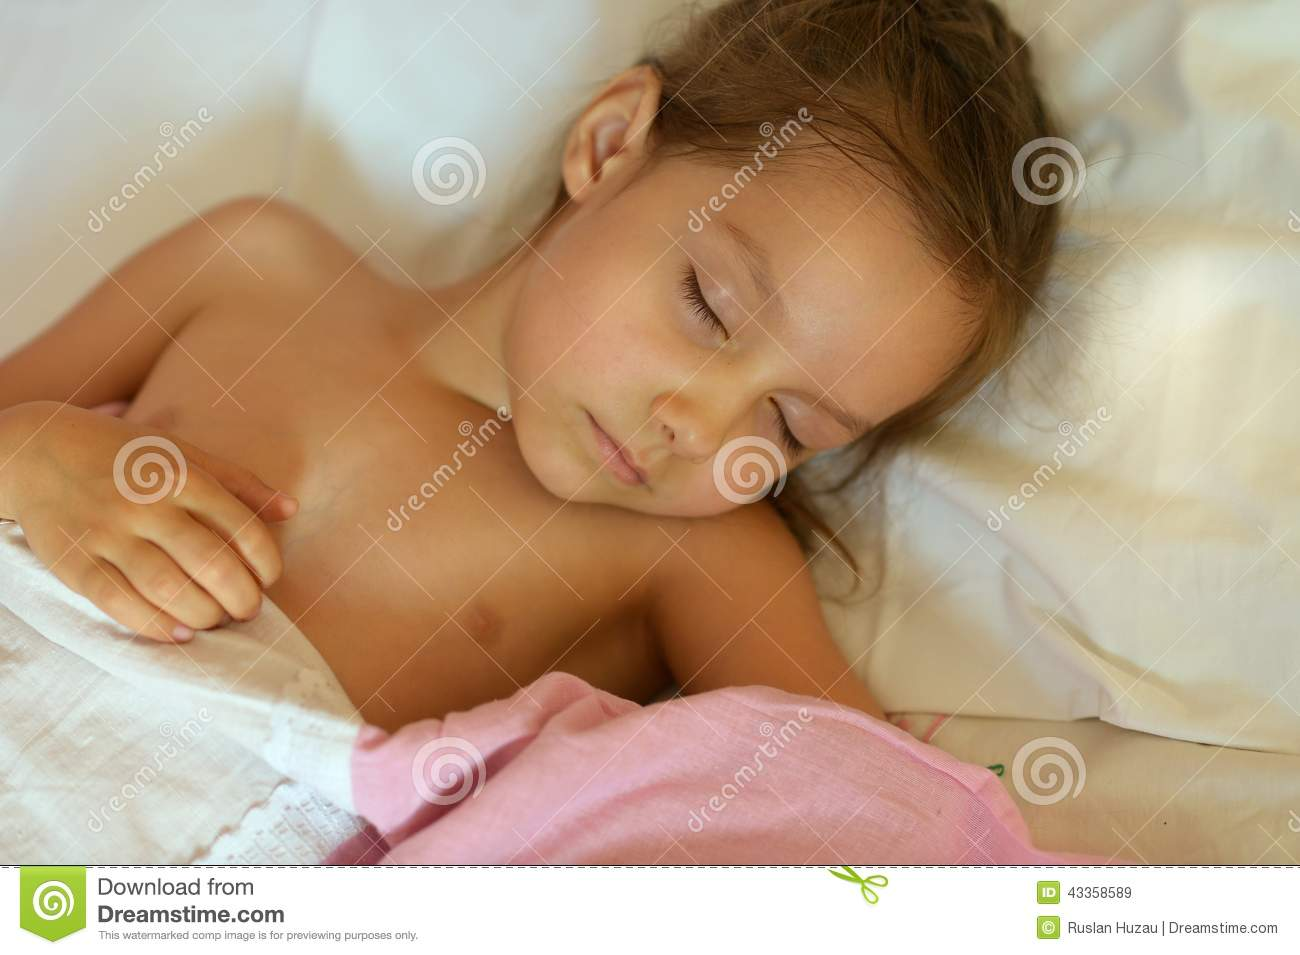 Royalty-Free Stock Photo. Download Cute Girl Sleeping In Bed ...